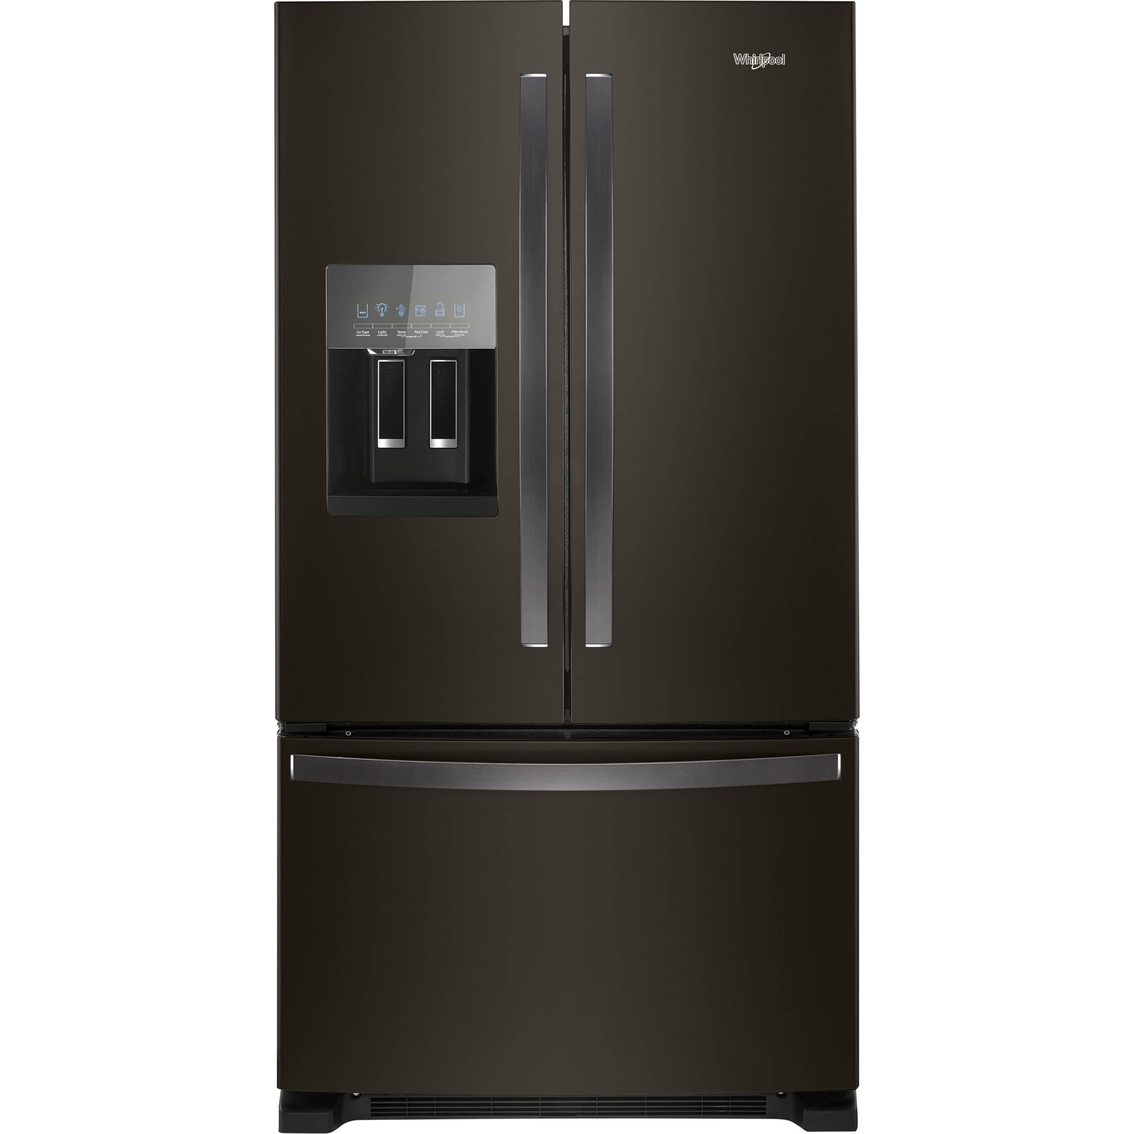 whirlpool 25 cu ft stainless steel french door refrigerator refrigerators home. Black Bedroom Furniture Sets. Home Design Ideas